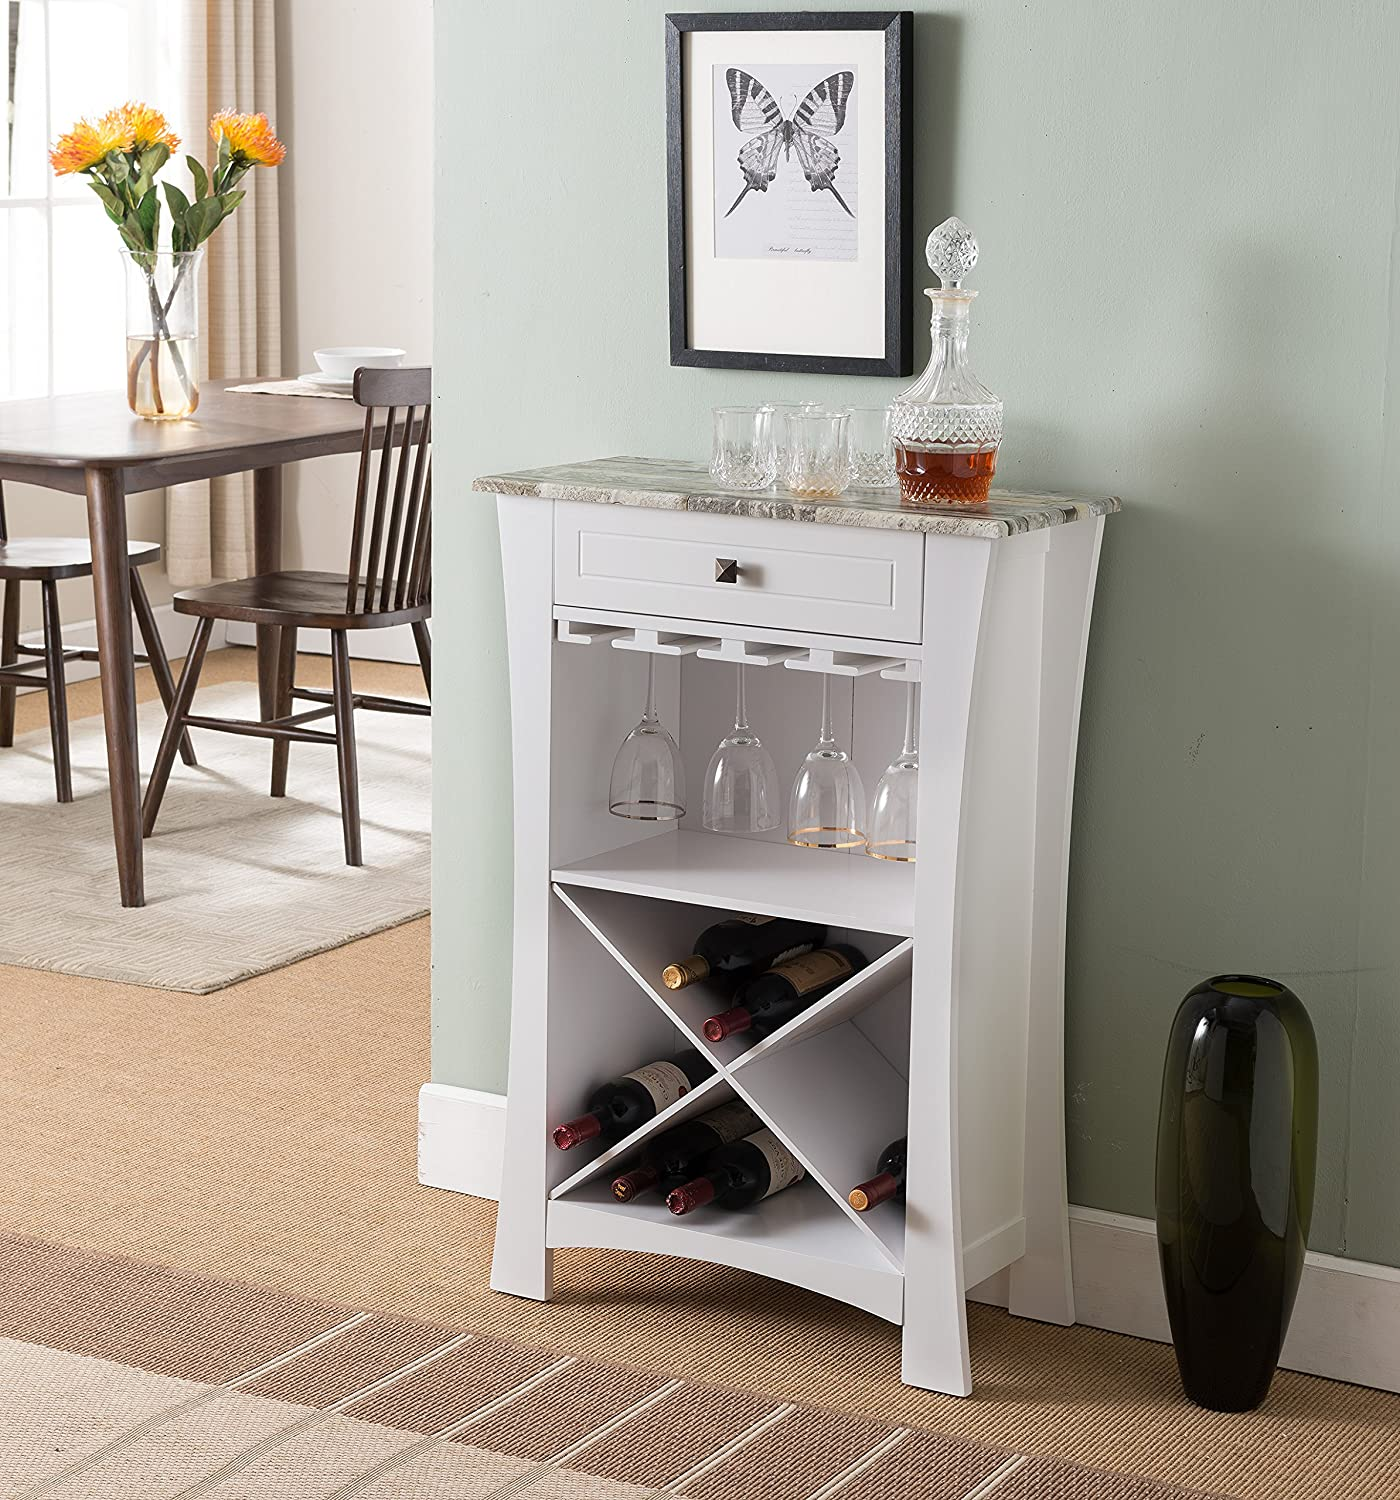 Kings Brand Hiland Bar Cabinet Wine Storage With Glass Holders Drawer, White, White